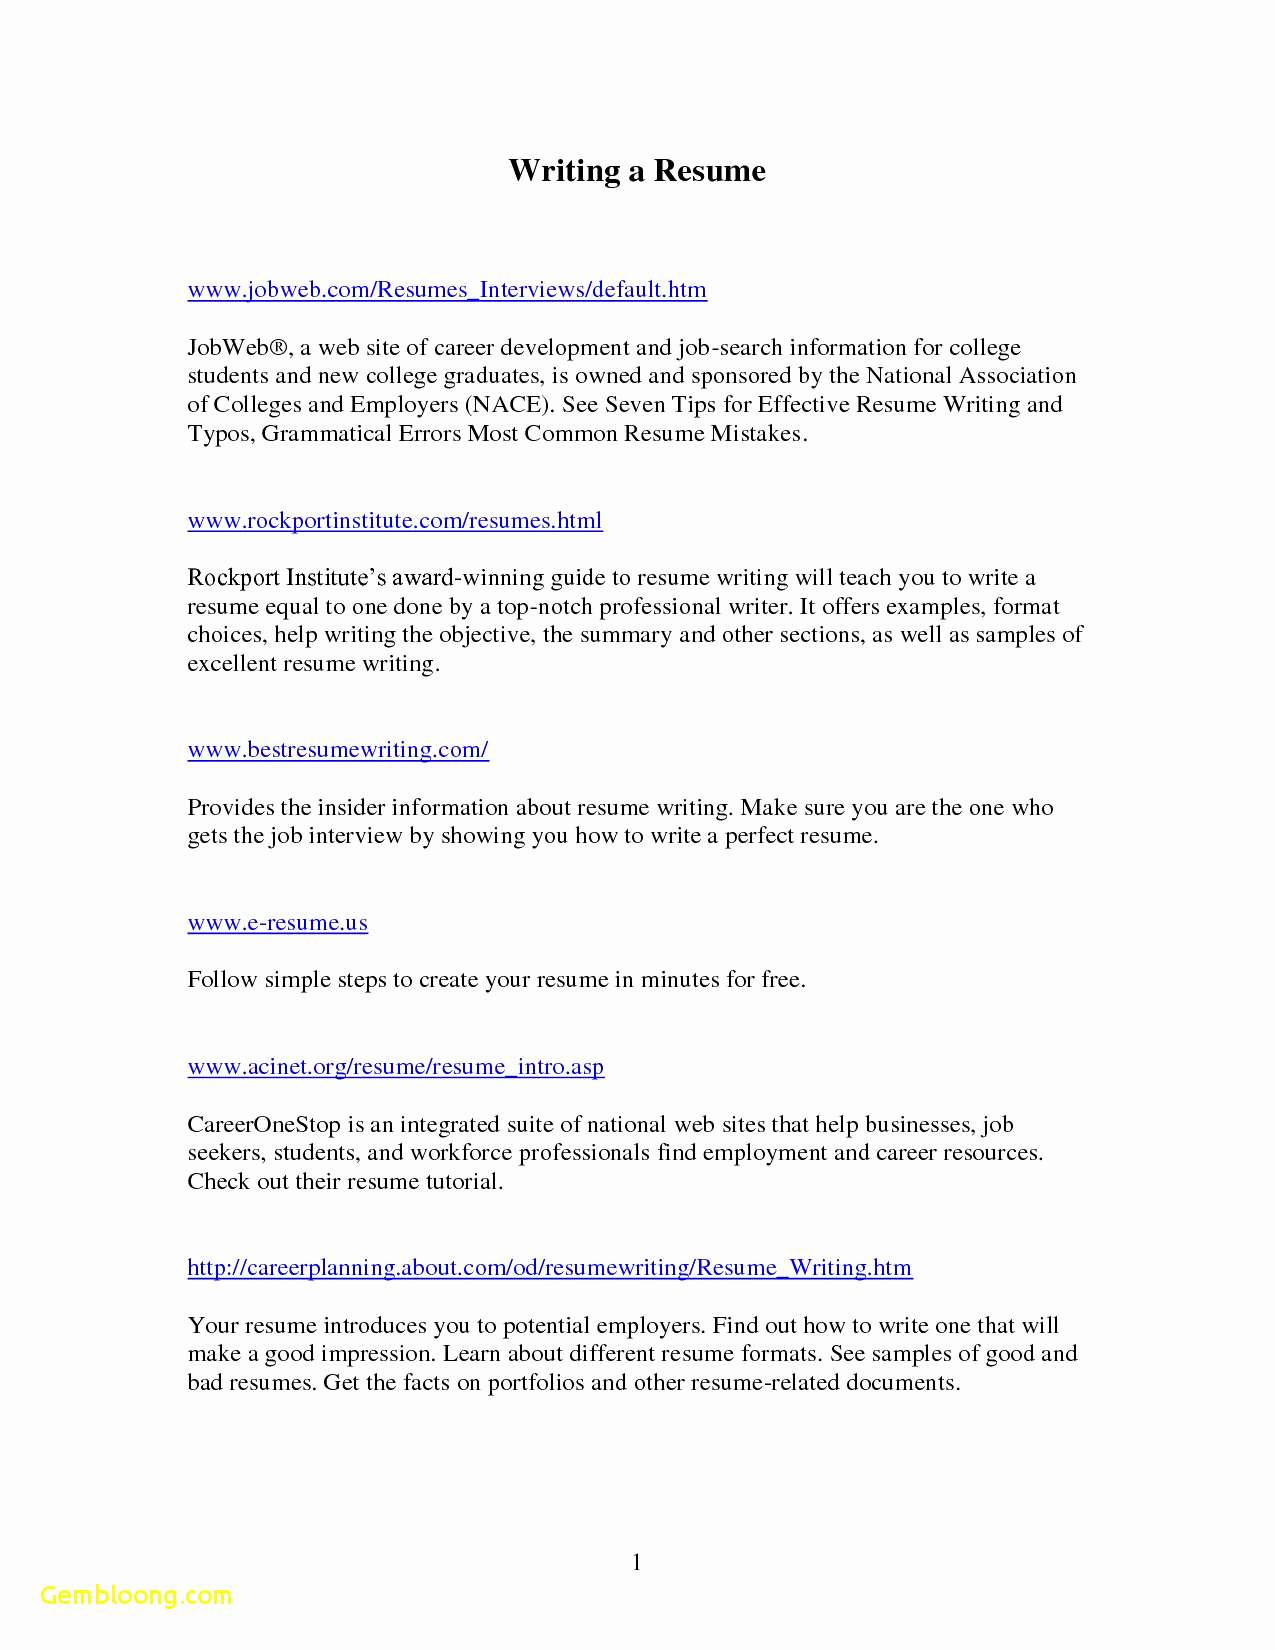 Attractive Resume Templates Free Download - Word Resume Templates – Resume Tutorial Pro